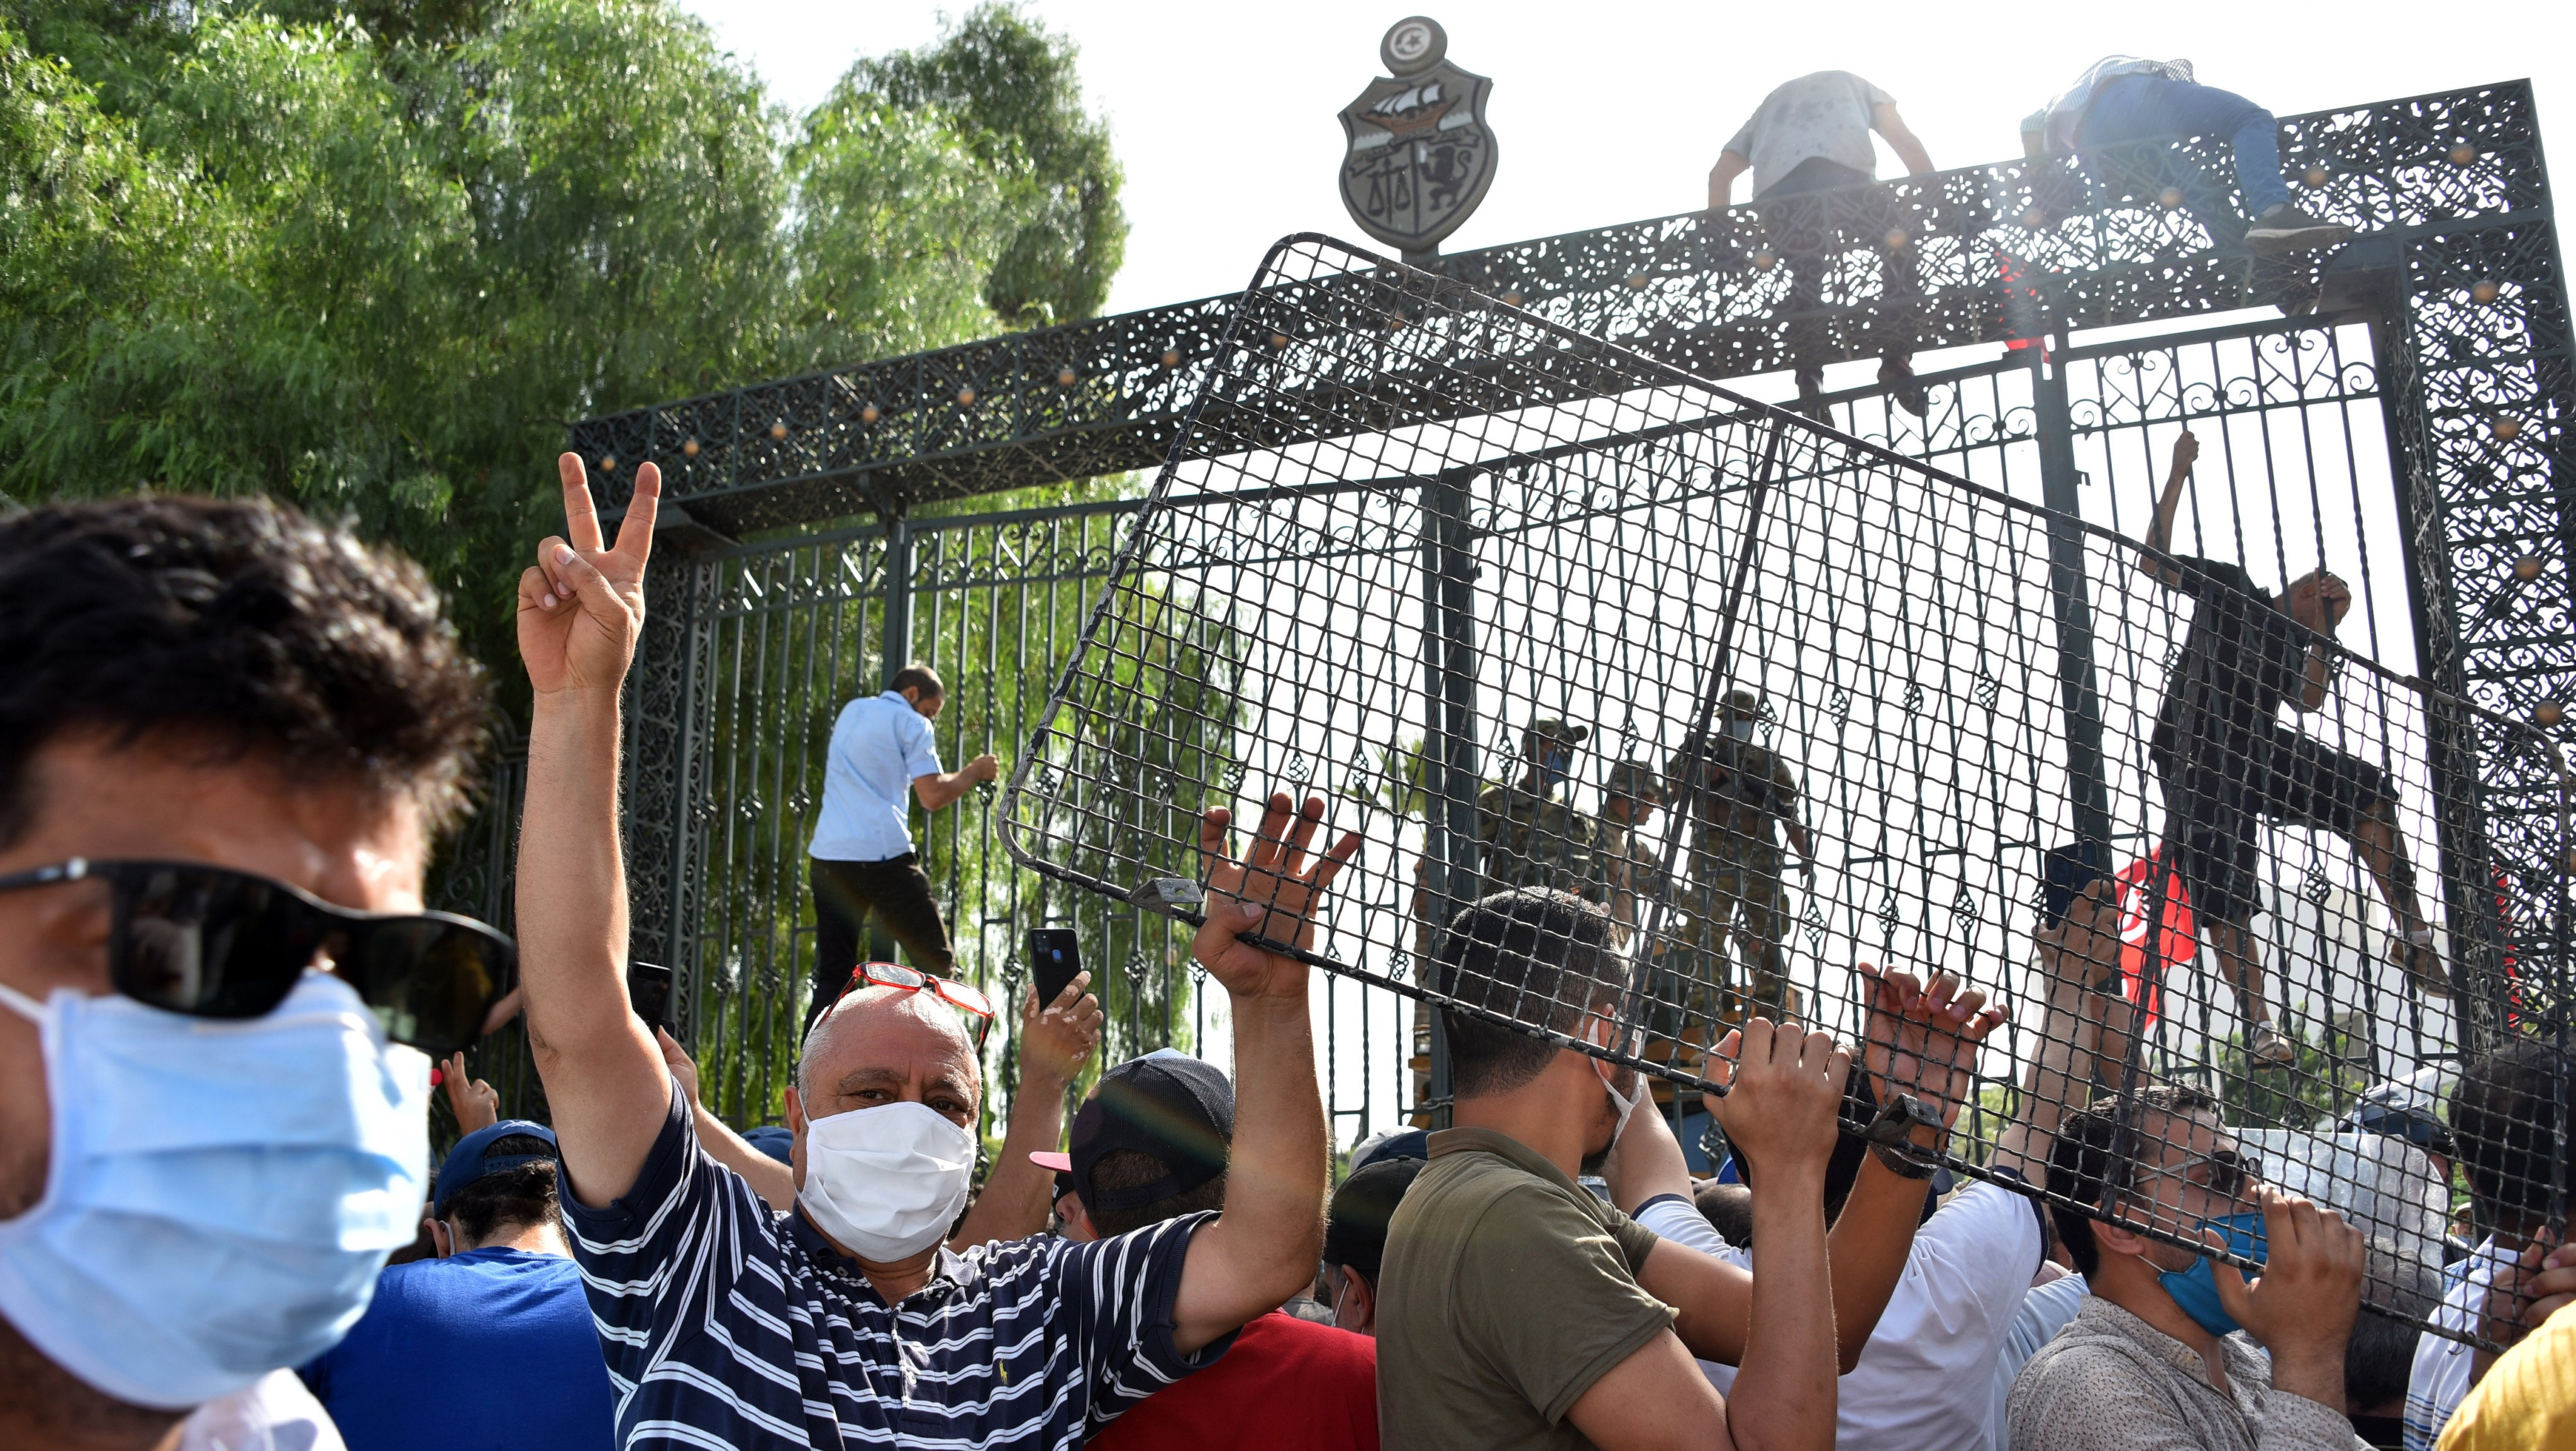 Supporters and opponents of coup gather in front of